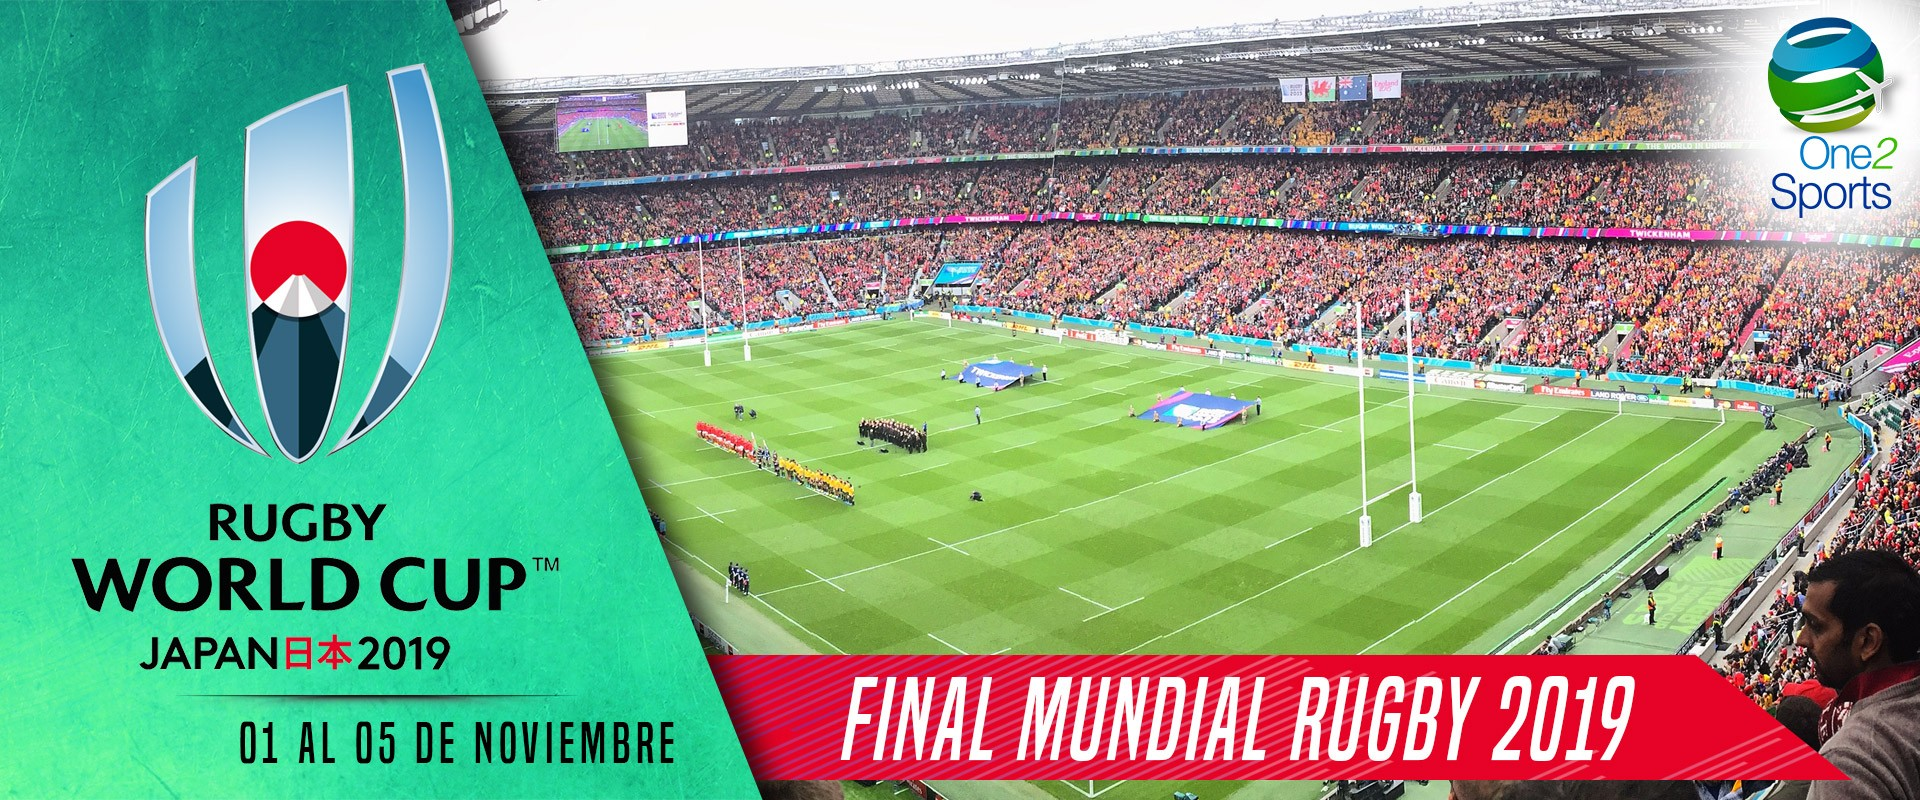 Final Mundial Rugby 2019